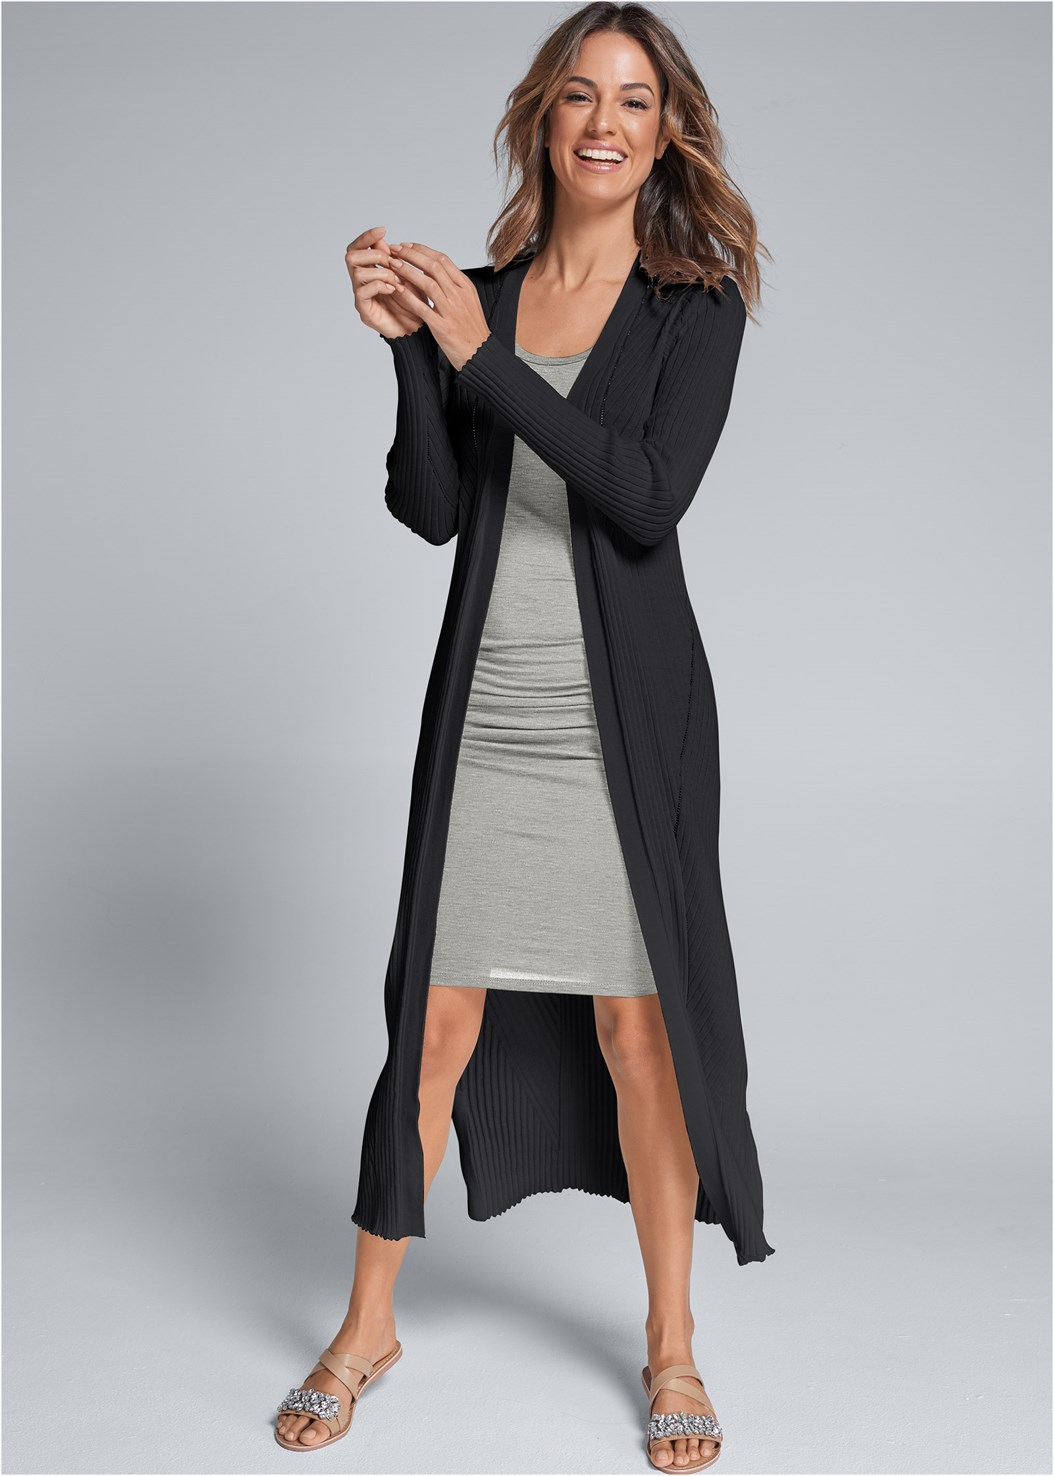 Long Ribbed Duster,Sleeveless Scoop Neck Ruched Bodycon Midi Dress,Buckle Riding Boots,Medallion Earrings